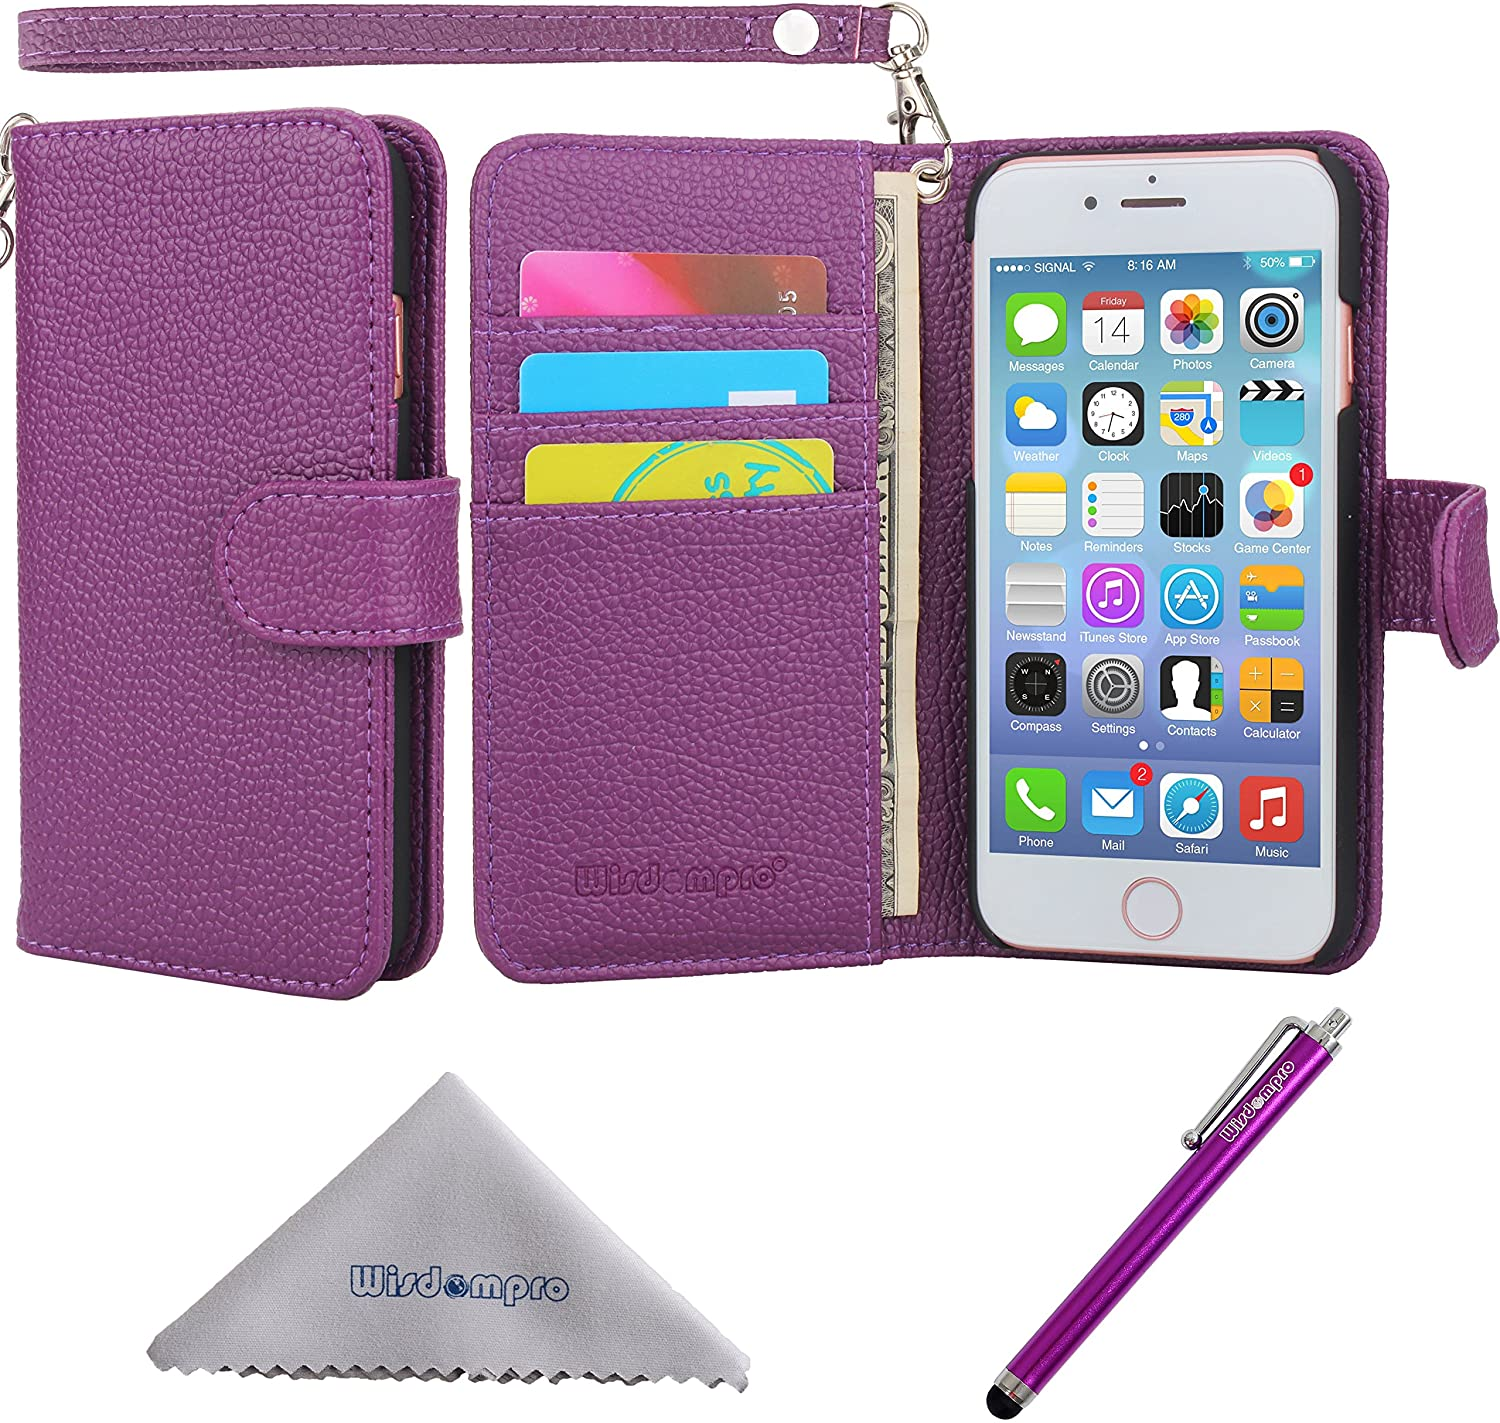 iPhone SE 2020 Case, iPhone 8 Case, iPhone 7 Case, Wisdompro Premium PU Leather Protective Folio Flip Wallet Case with Multiple Card Holder Slots and Lanyard for 4.7 Inch Apple iPhone SE2/8/7 - Purple